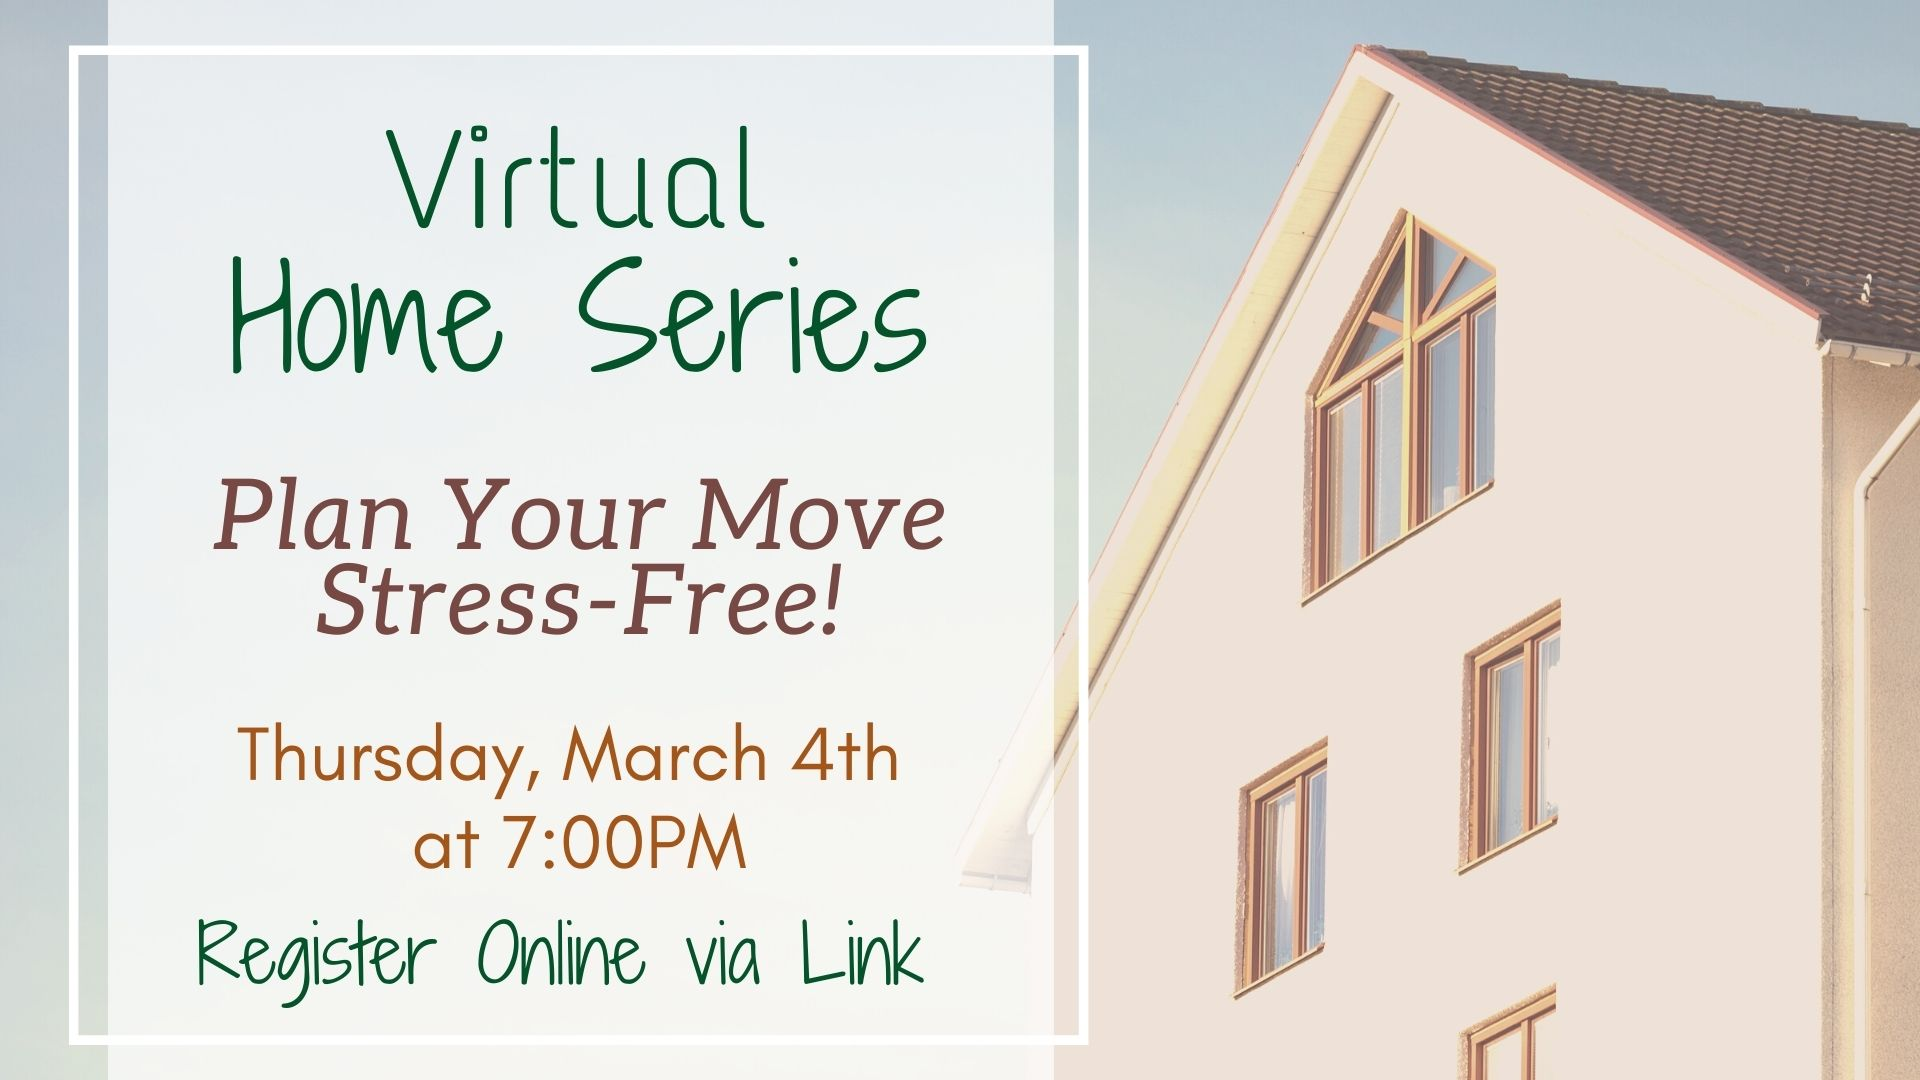 Virtual Home Series: Plan Your Move, Stress-Free!